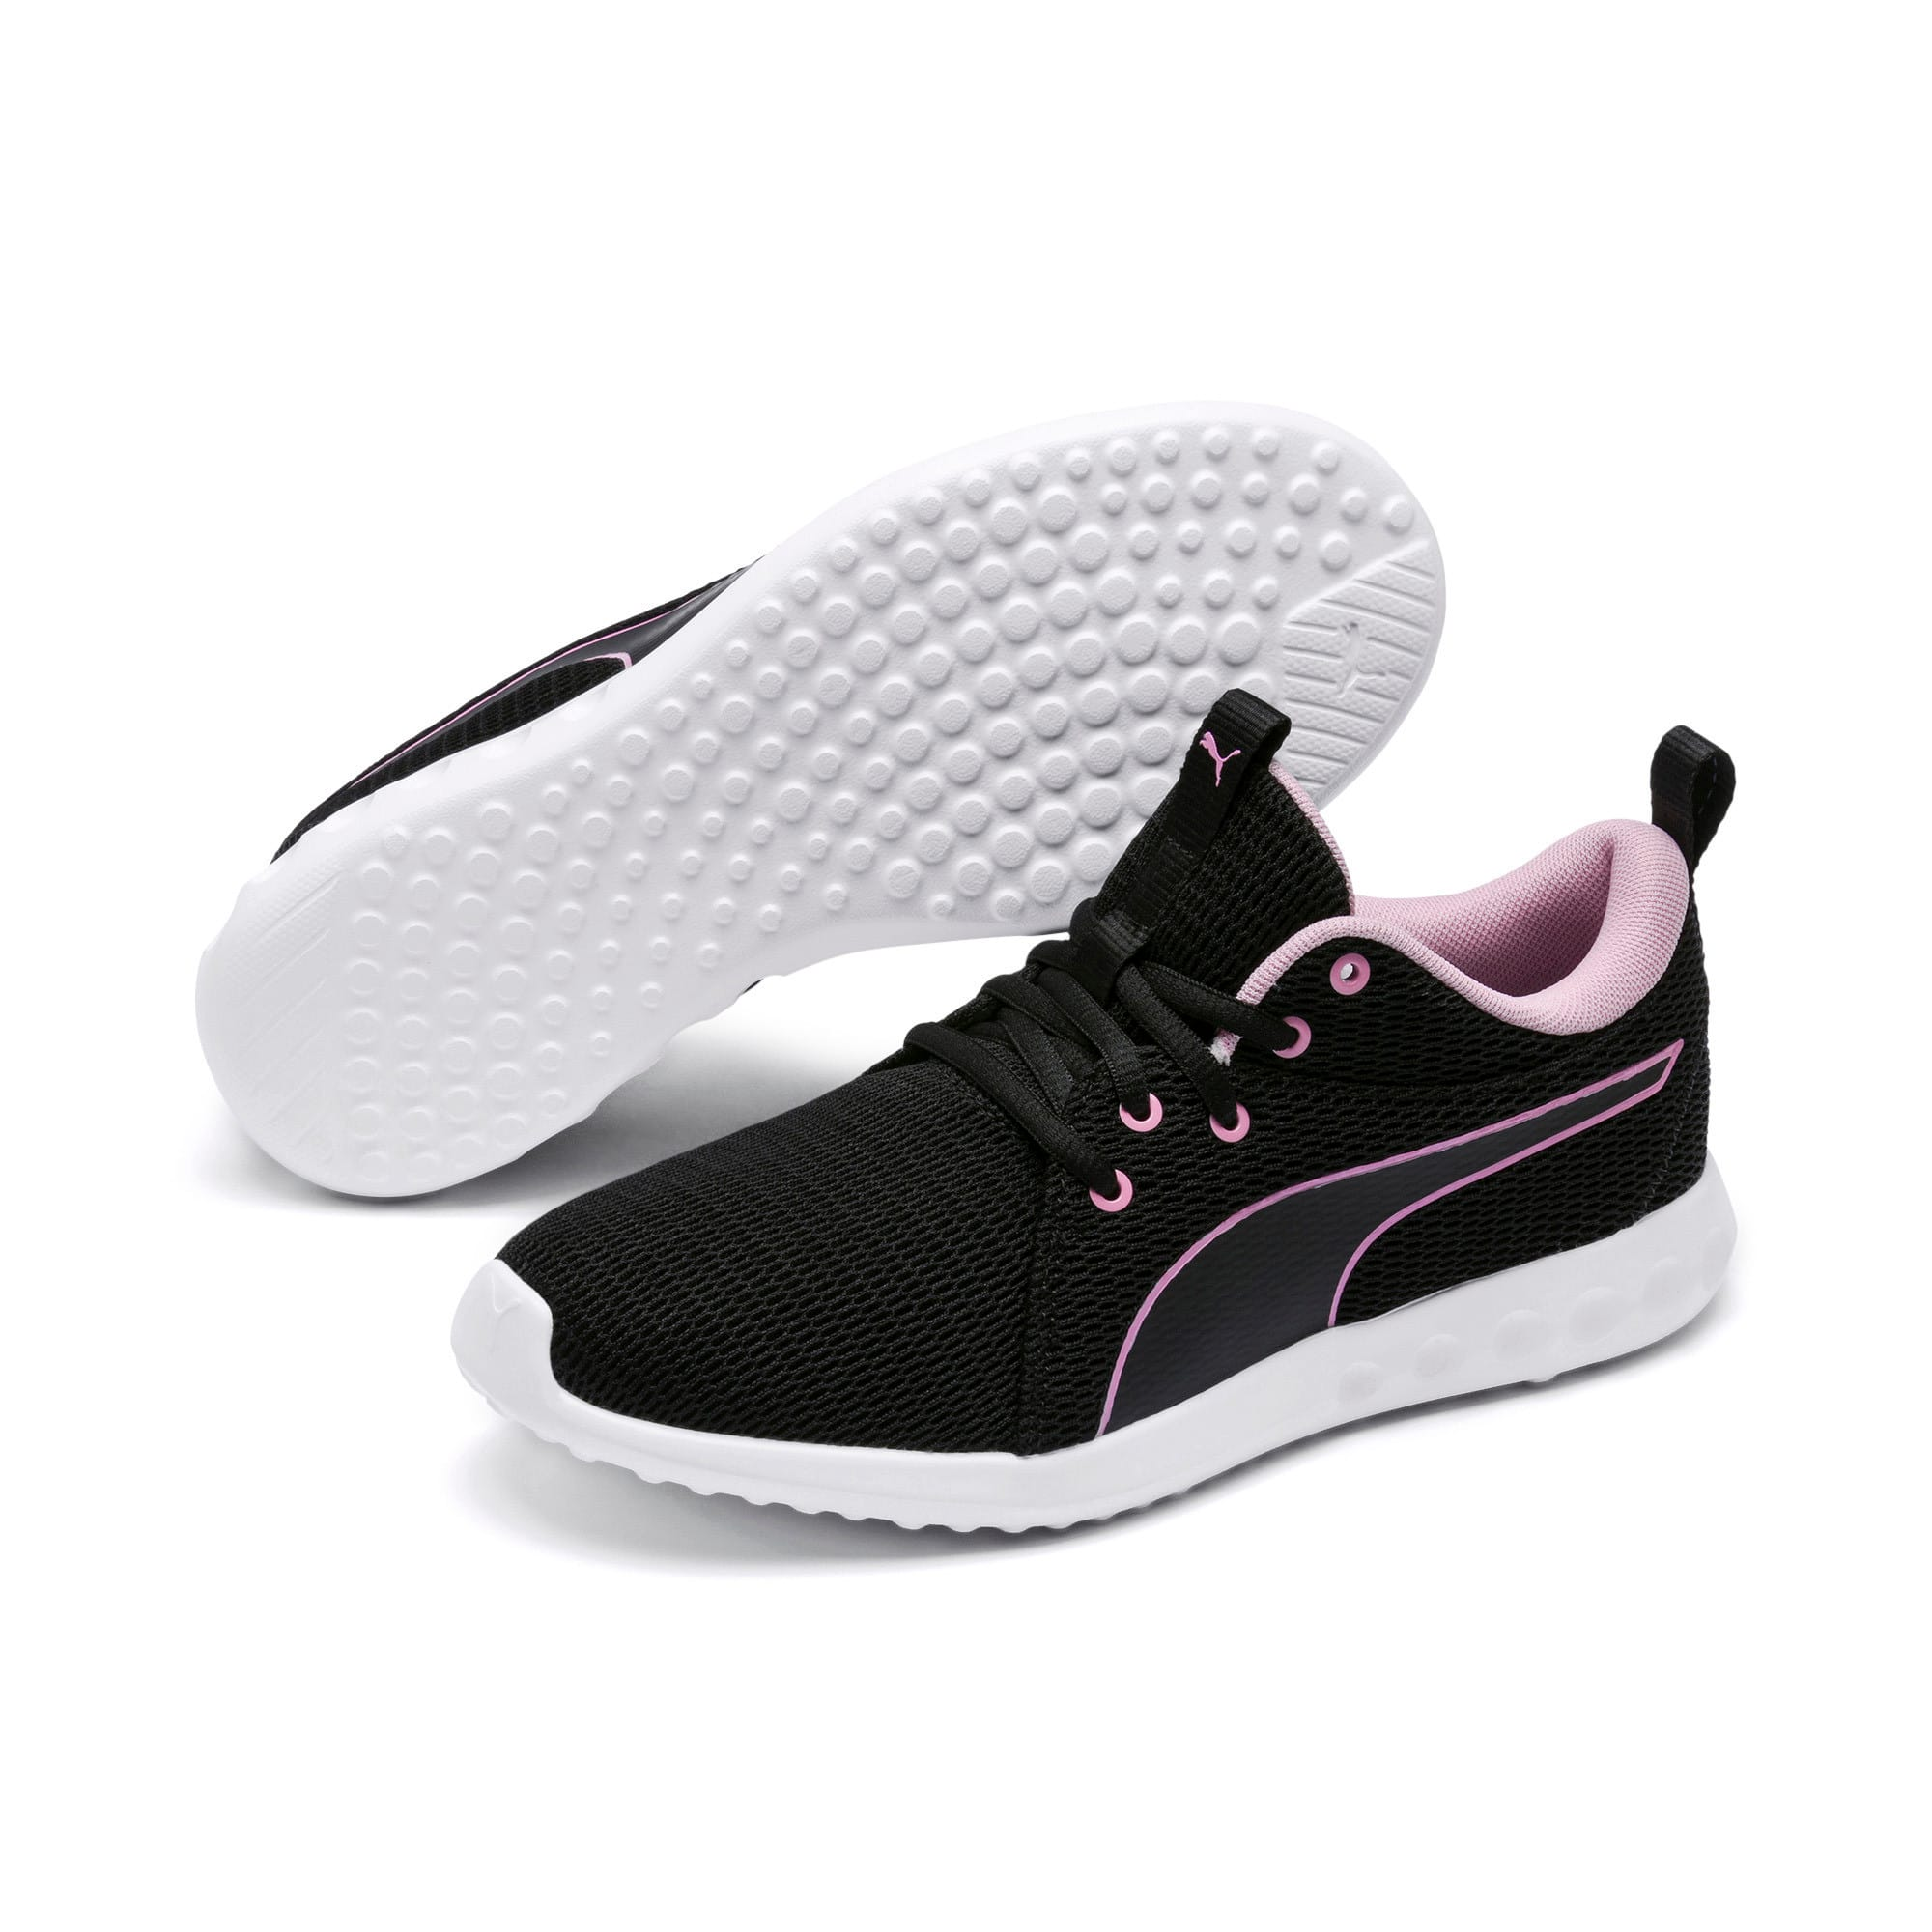 Thumbnail 2 of Carson 2 New Core Women's Training Shoes, Puma Black-Pale Pink, medium